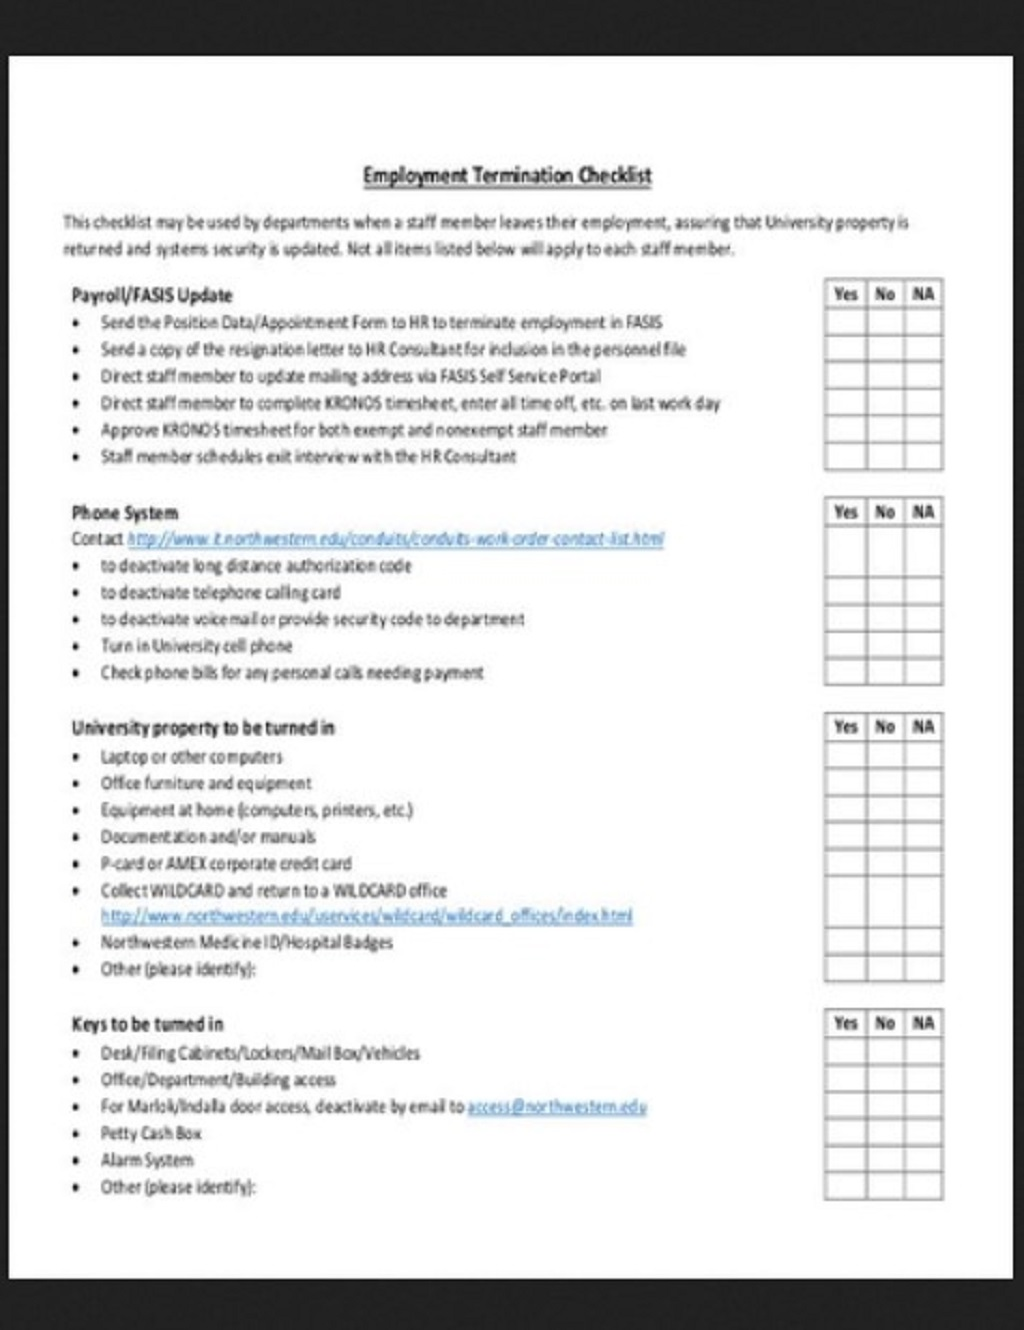 HR Termination Checklist Template Example Form Hr Daily For Audit Strategies Startups Excel Documents  Examples Large